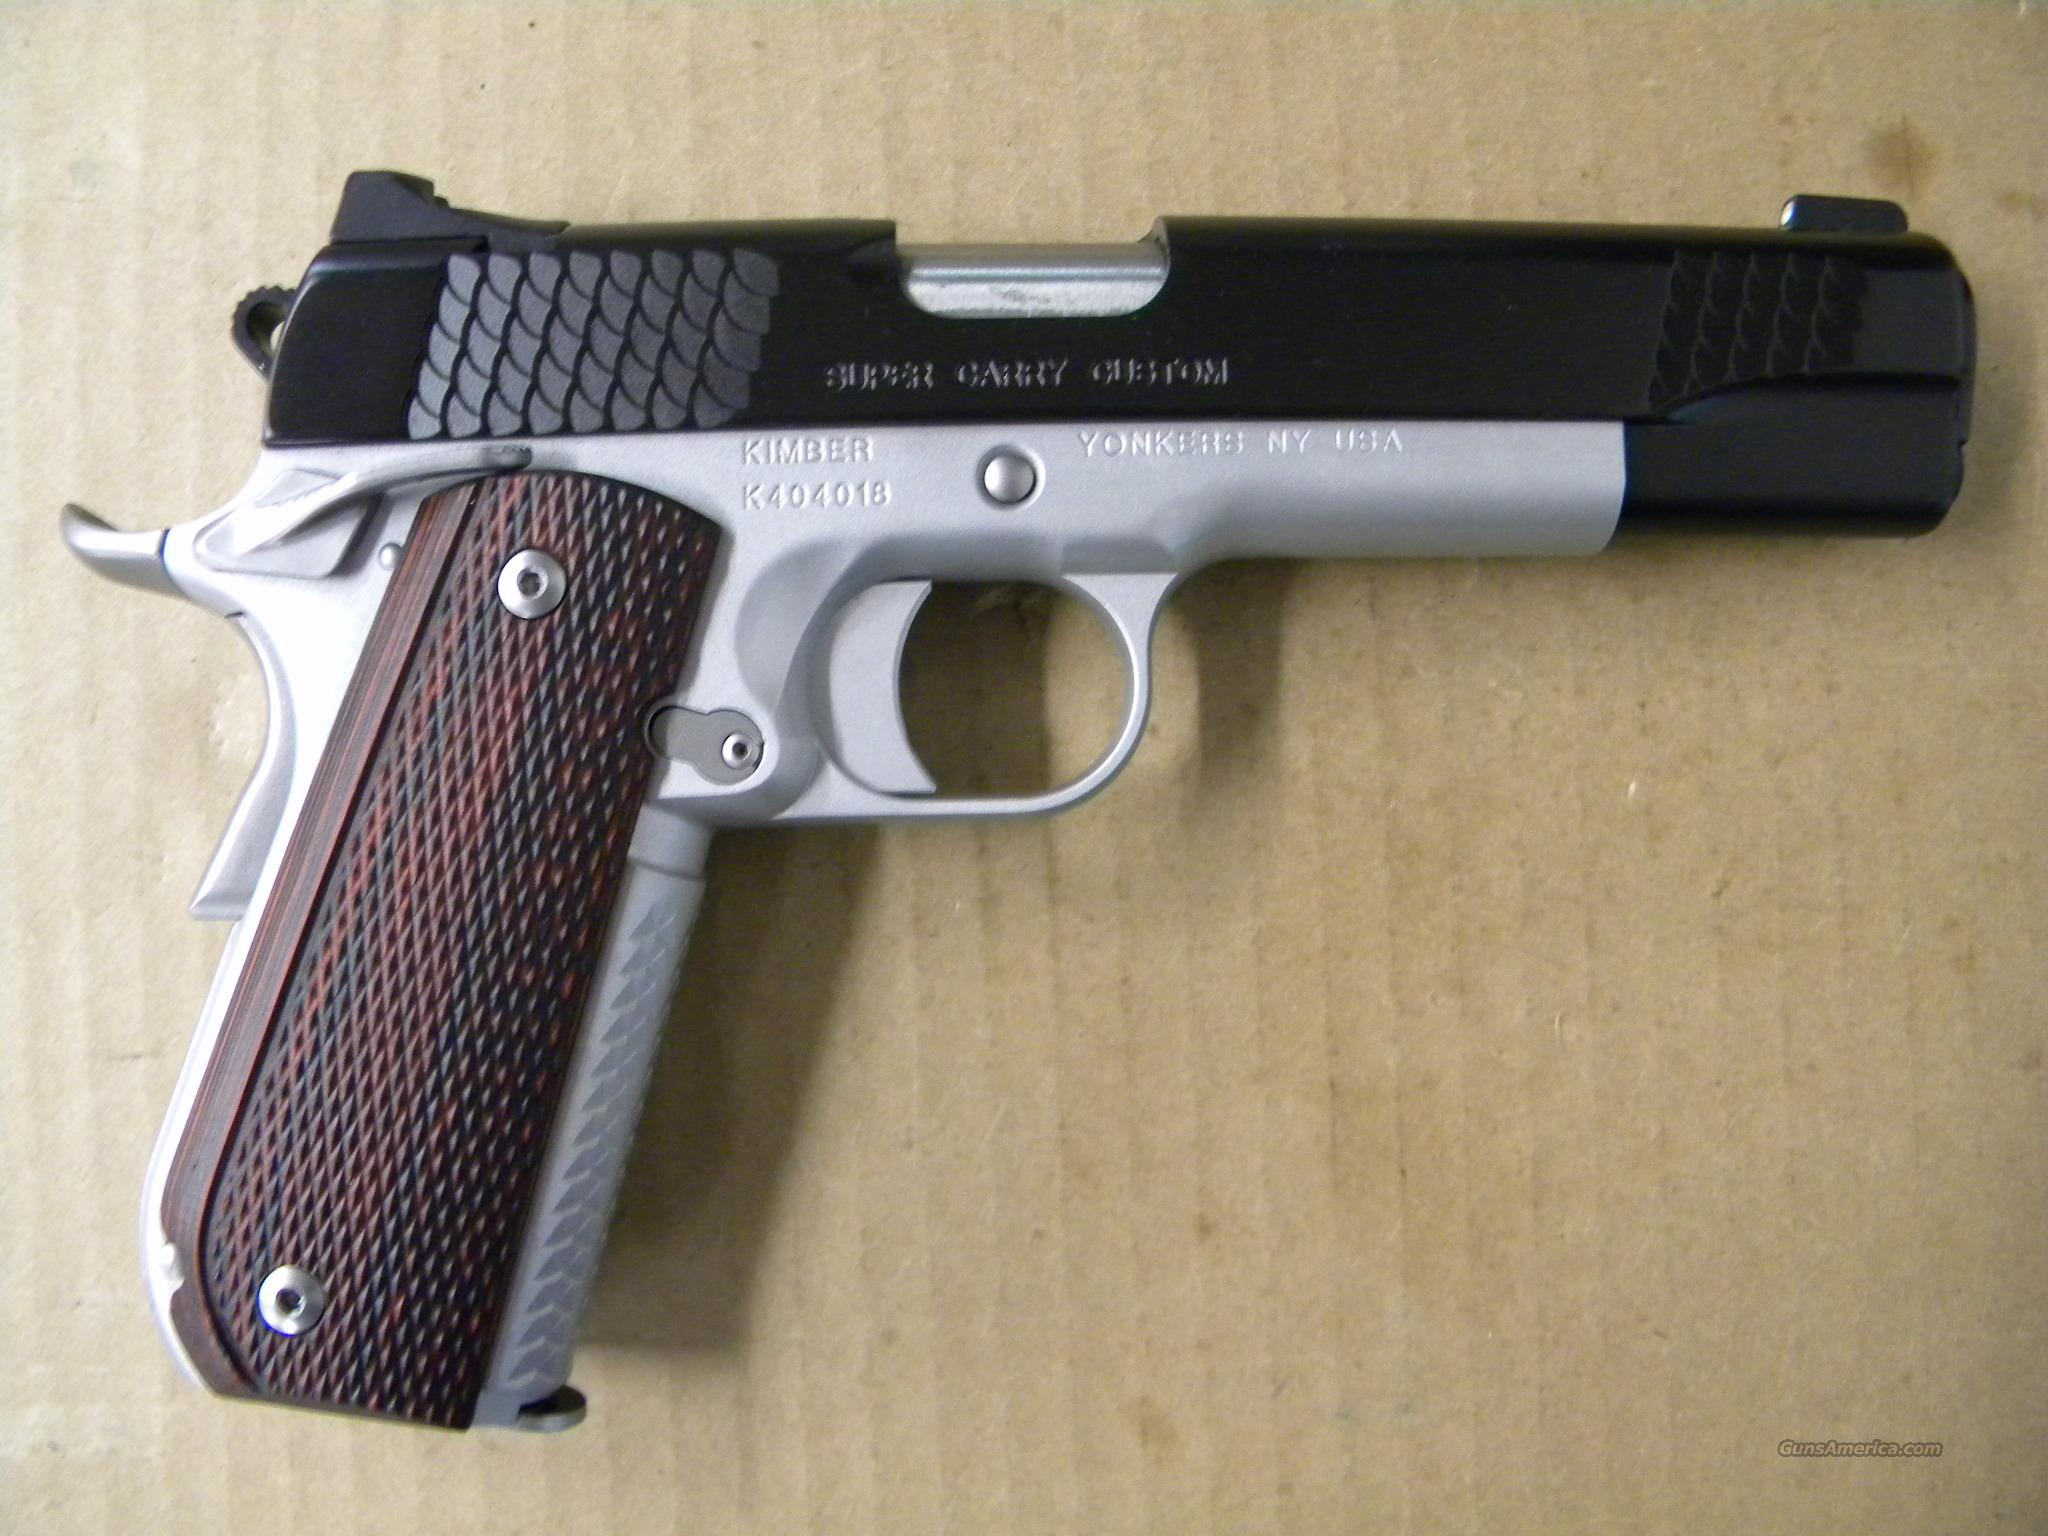 Kimber Super Carry Custom 1911 .45ACP  Guns > Pistols > Kimber of America Pistols